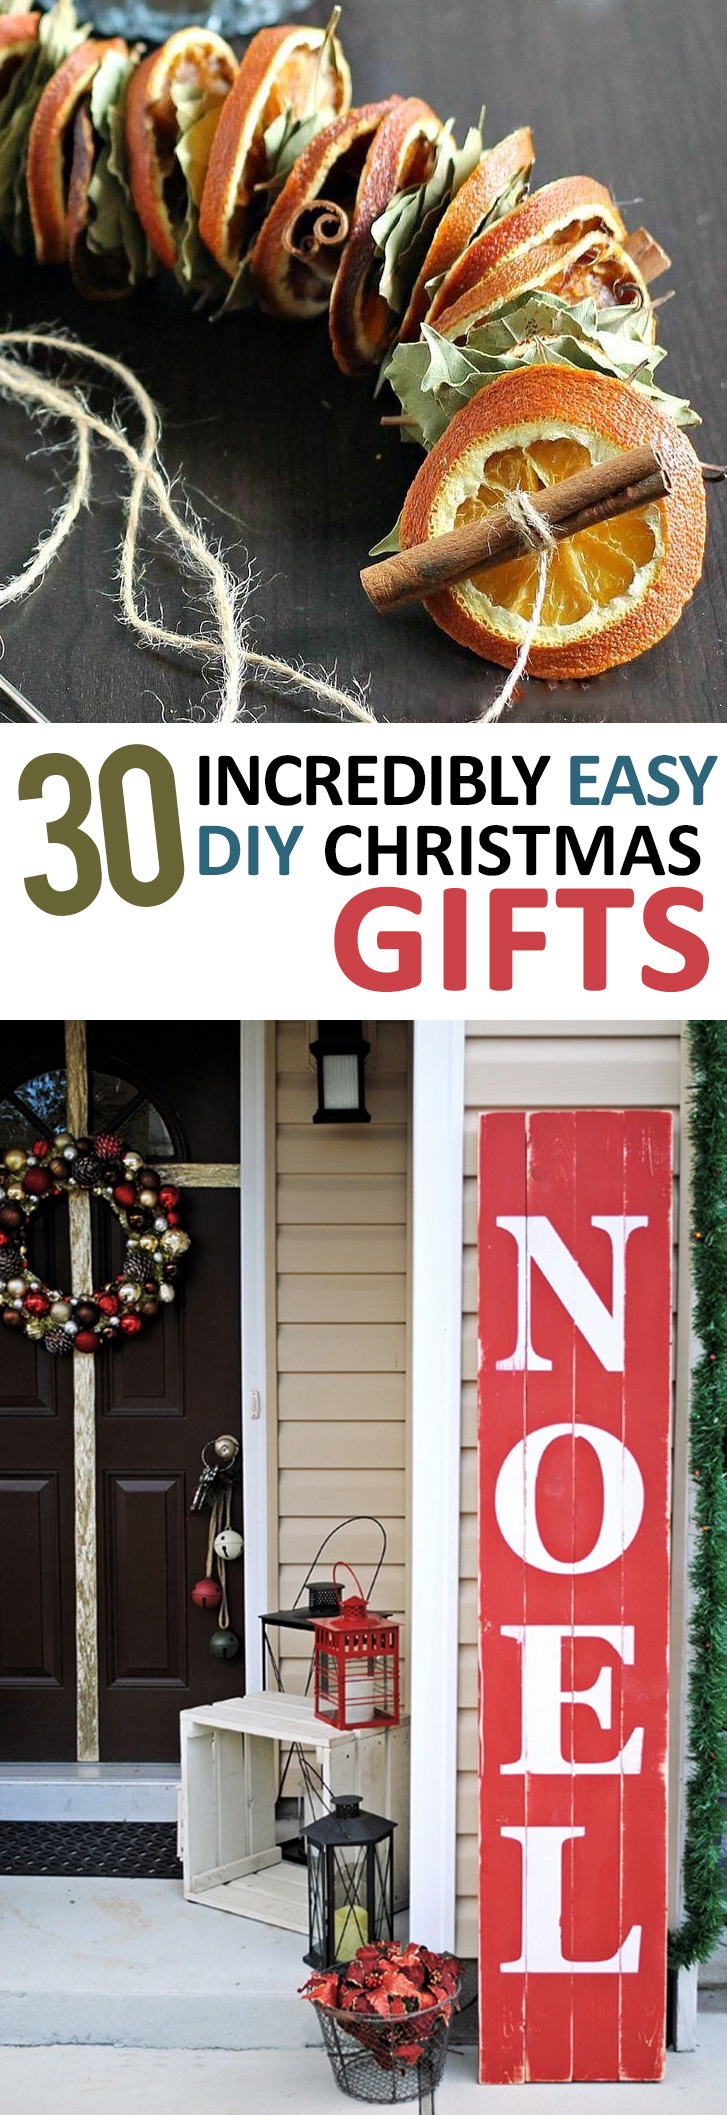 pin-30-incredibly-easy-diy-christmas-gifts